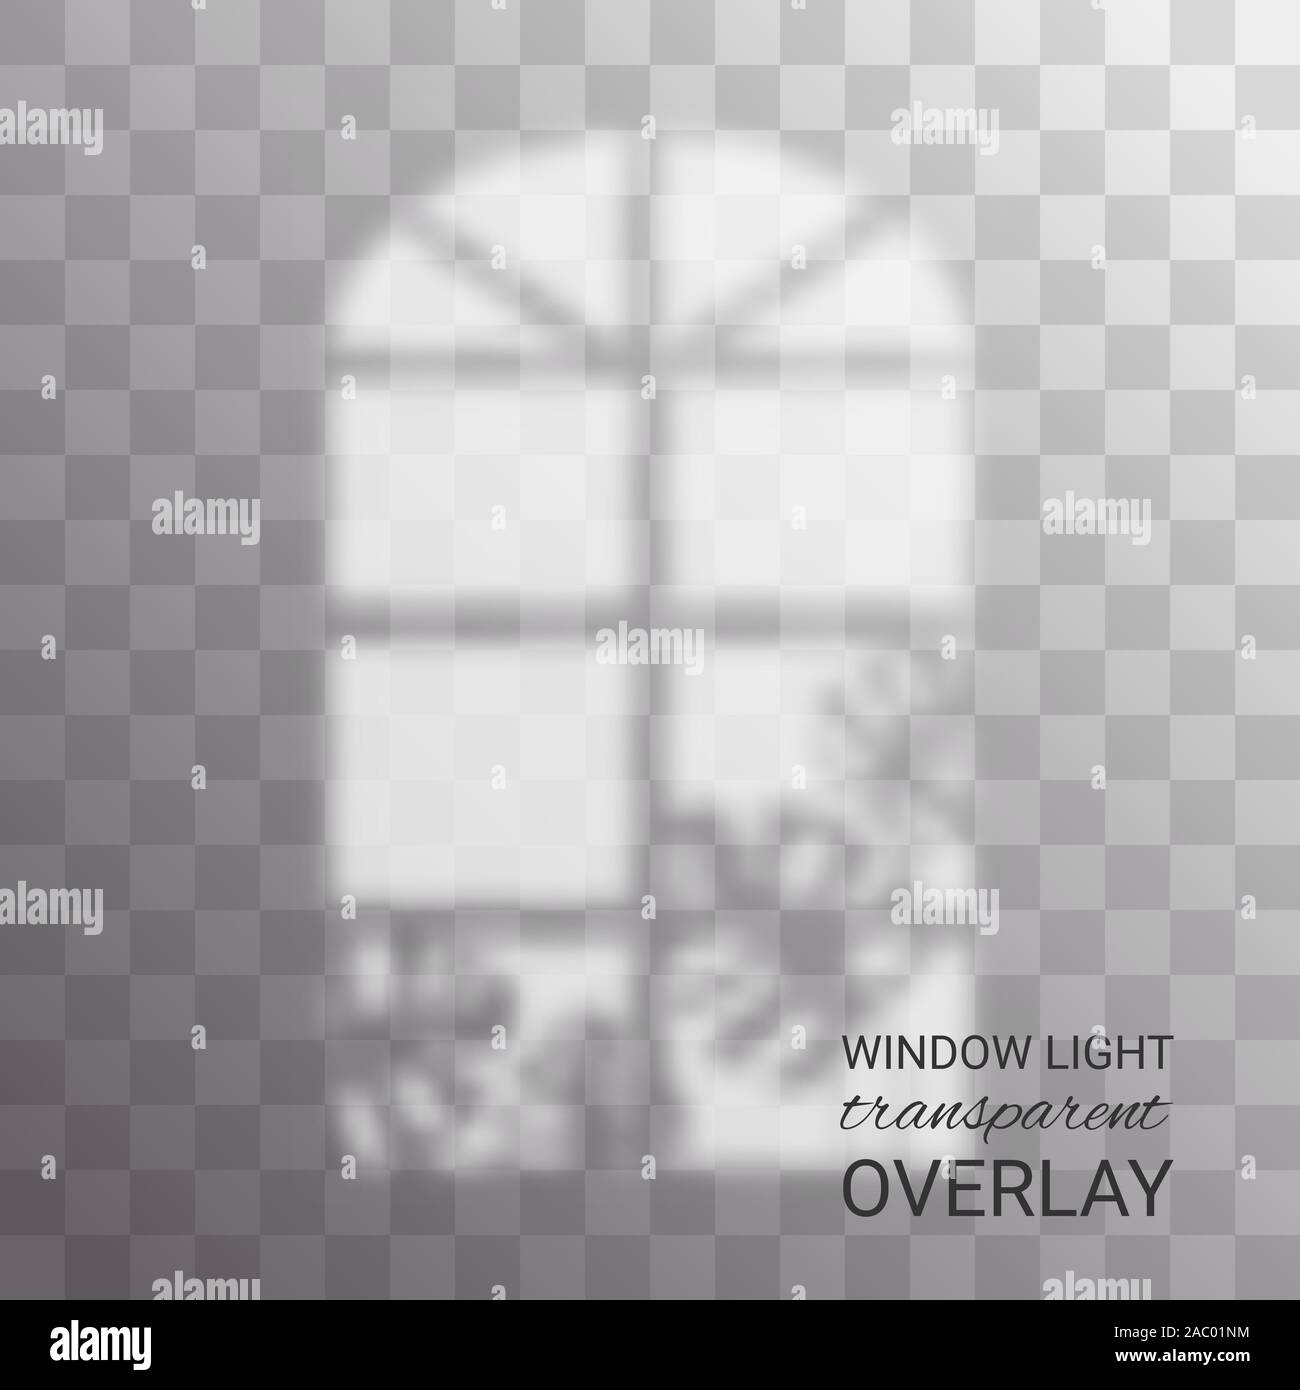 Realistic Shadow Overlay Window Light With Shadow Texture Of Tropical Plant Leaves On Isolated Background Vector Shade Overlay Abstract Indoor Stock Vector Image Art Alamy